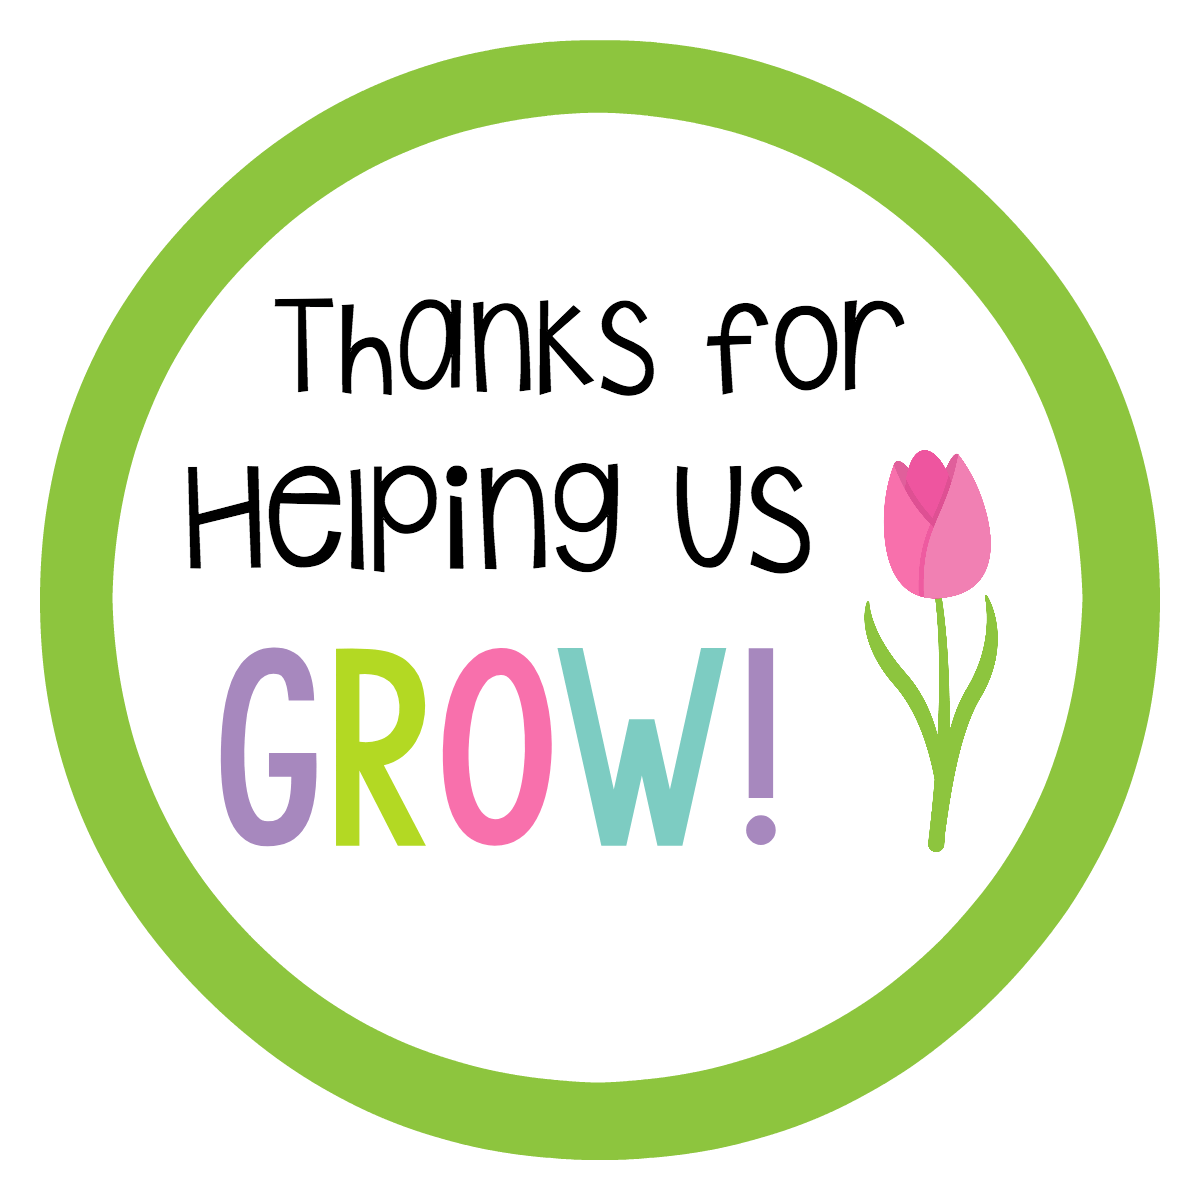 picture about Thanks for Helping Me Grow Free Printable named Bouquets for Instructor Present Thought Enjoyment-Squared